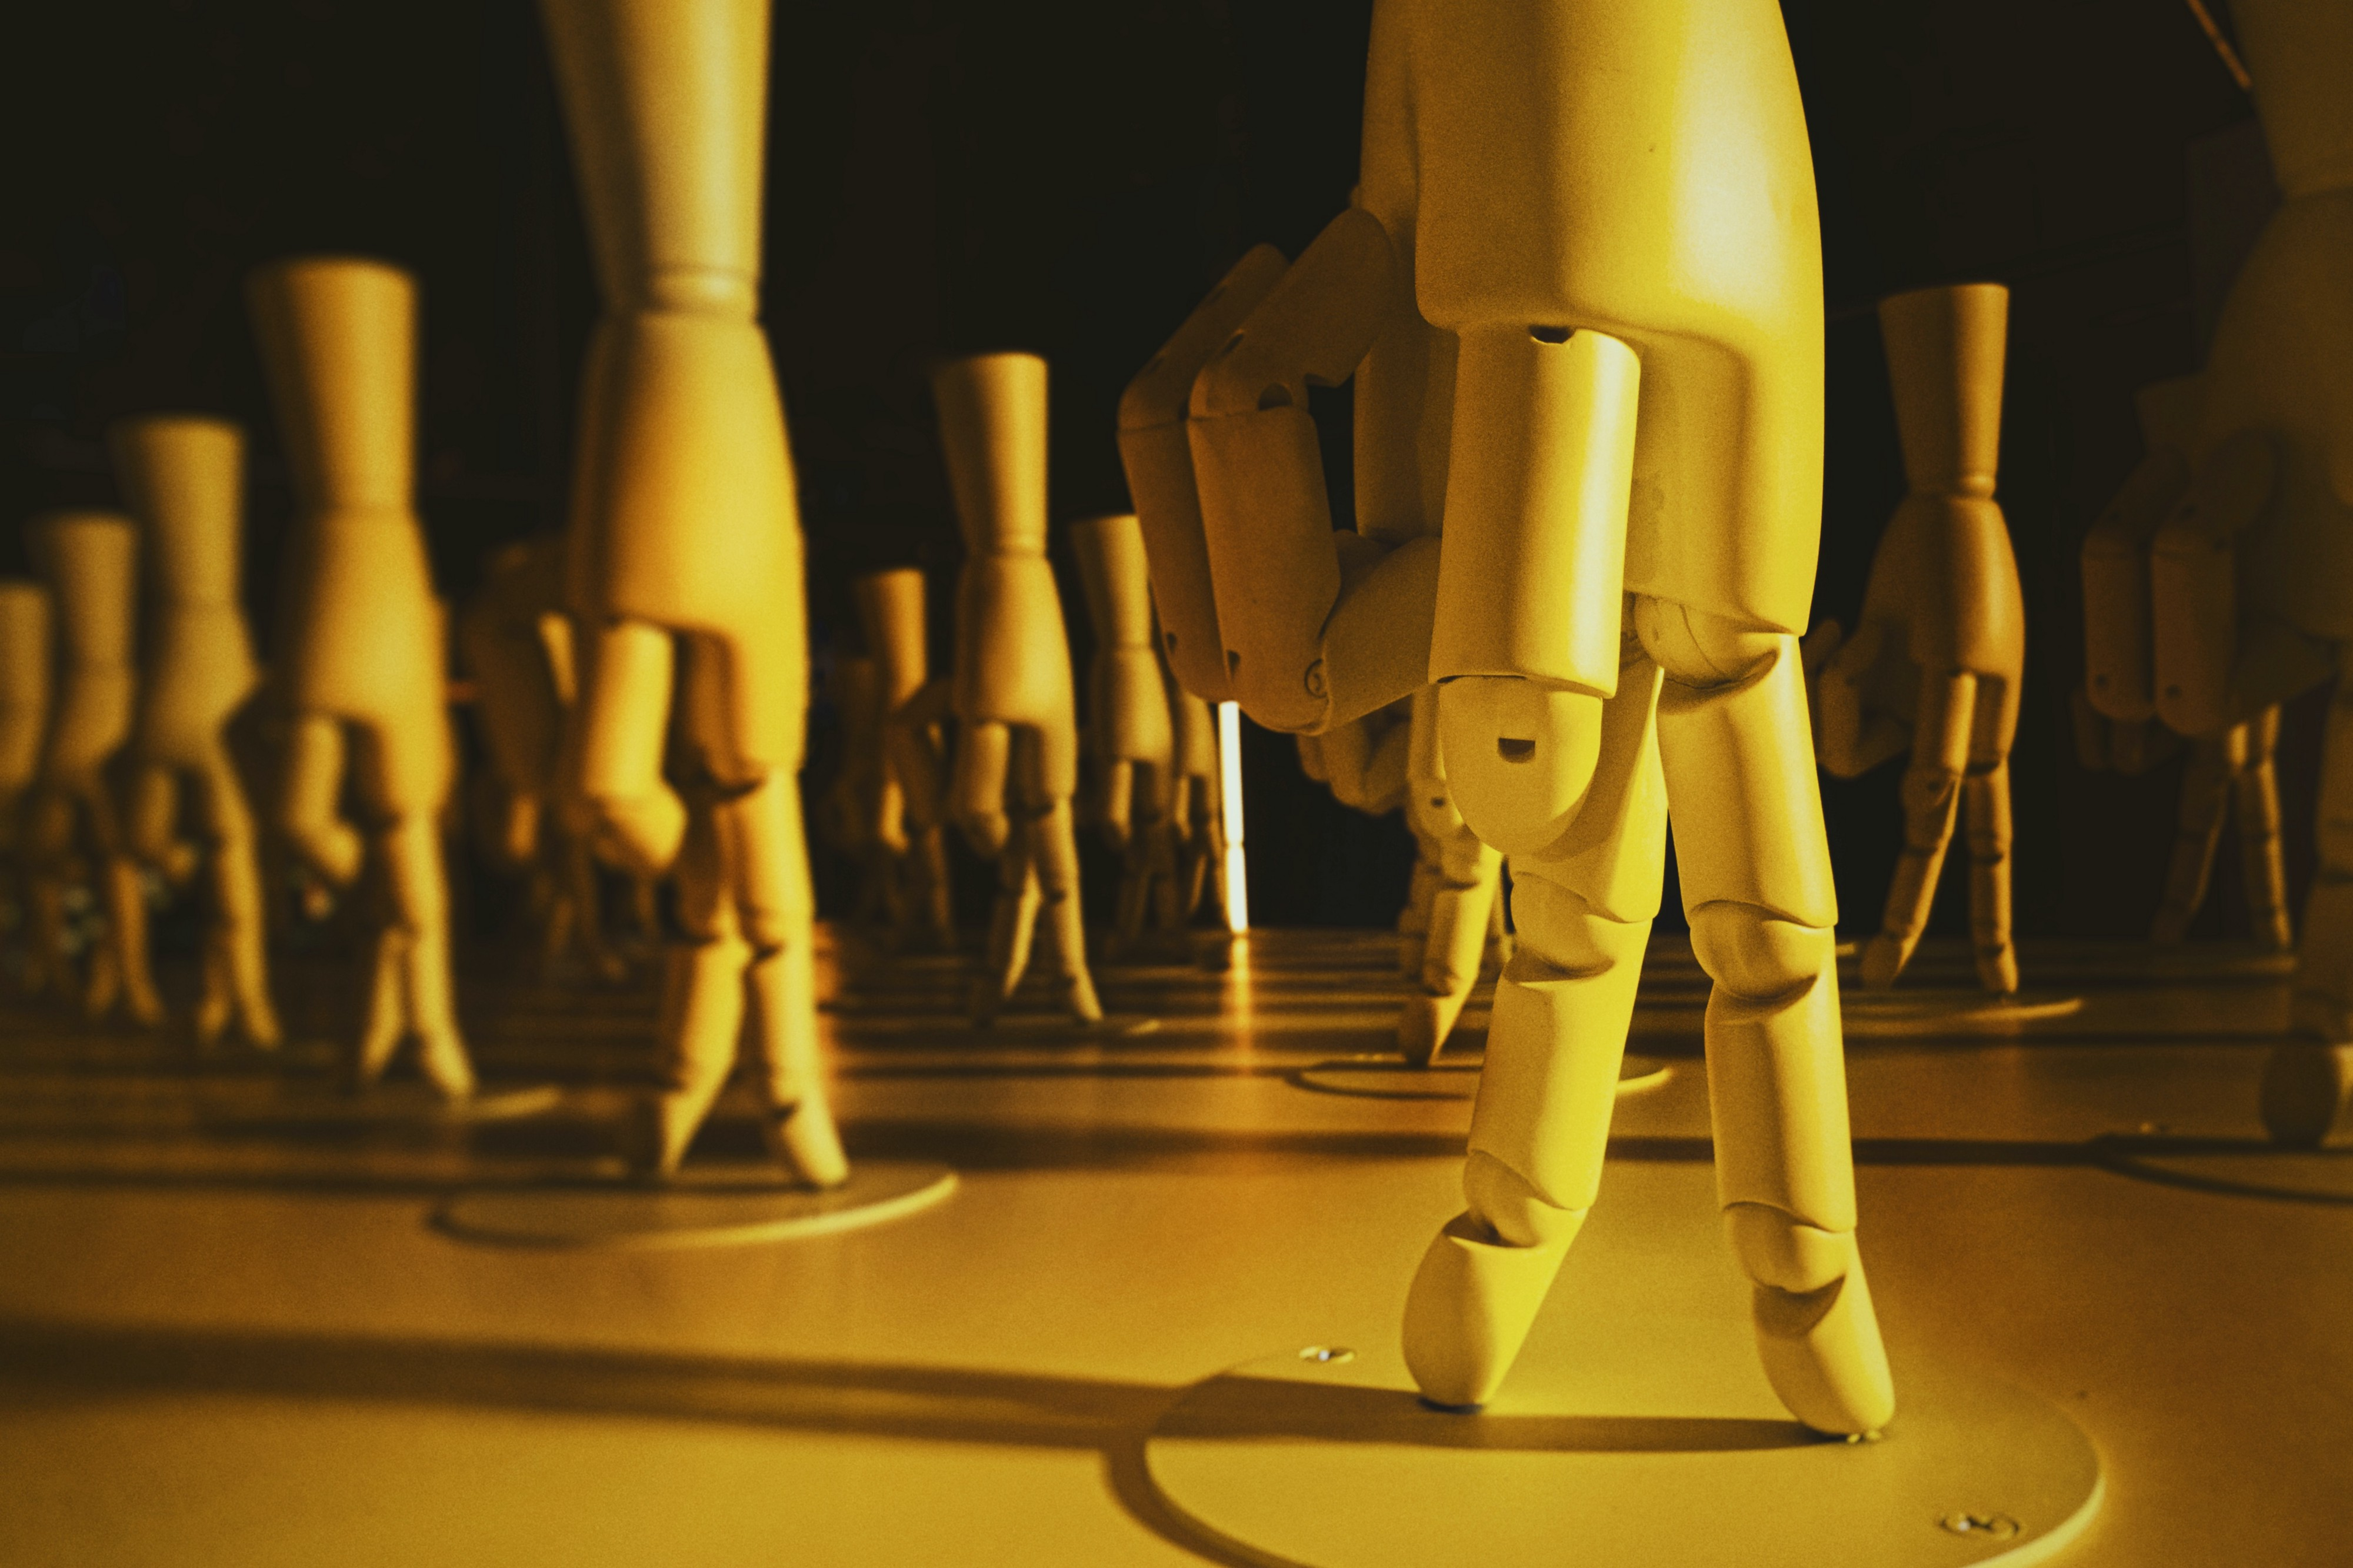 picture of many artificial hands